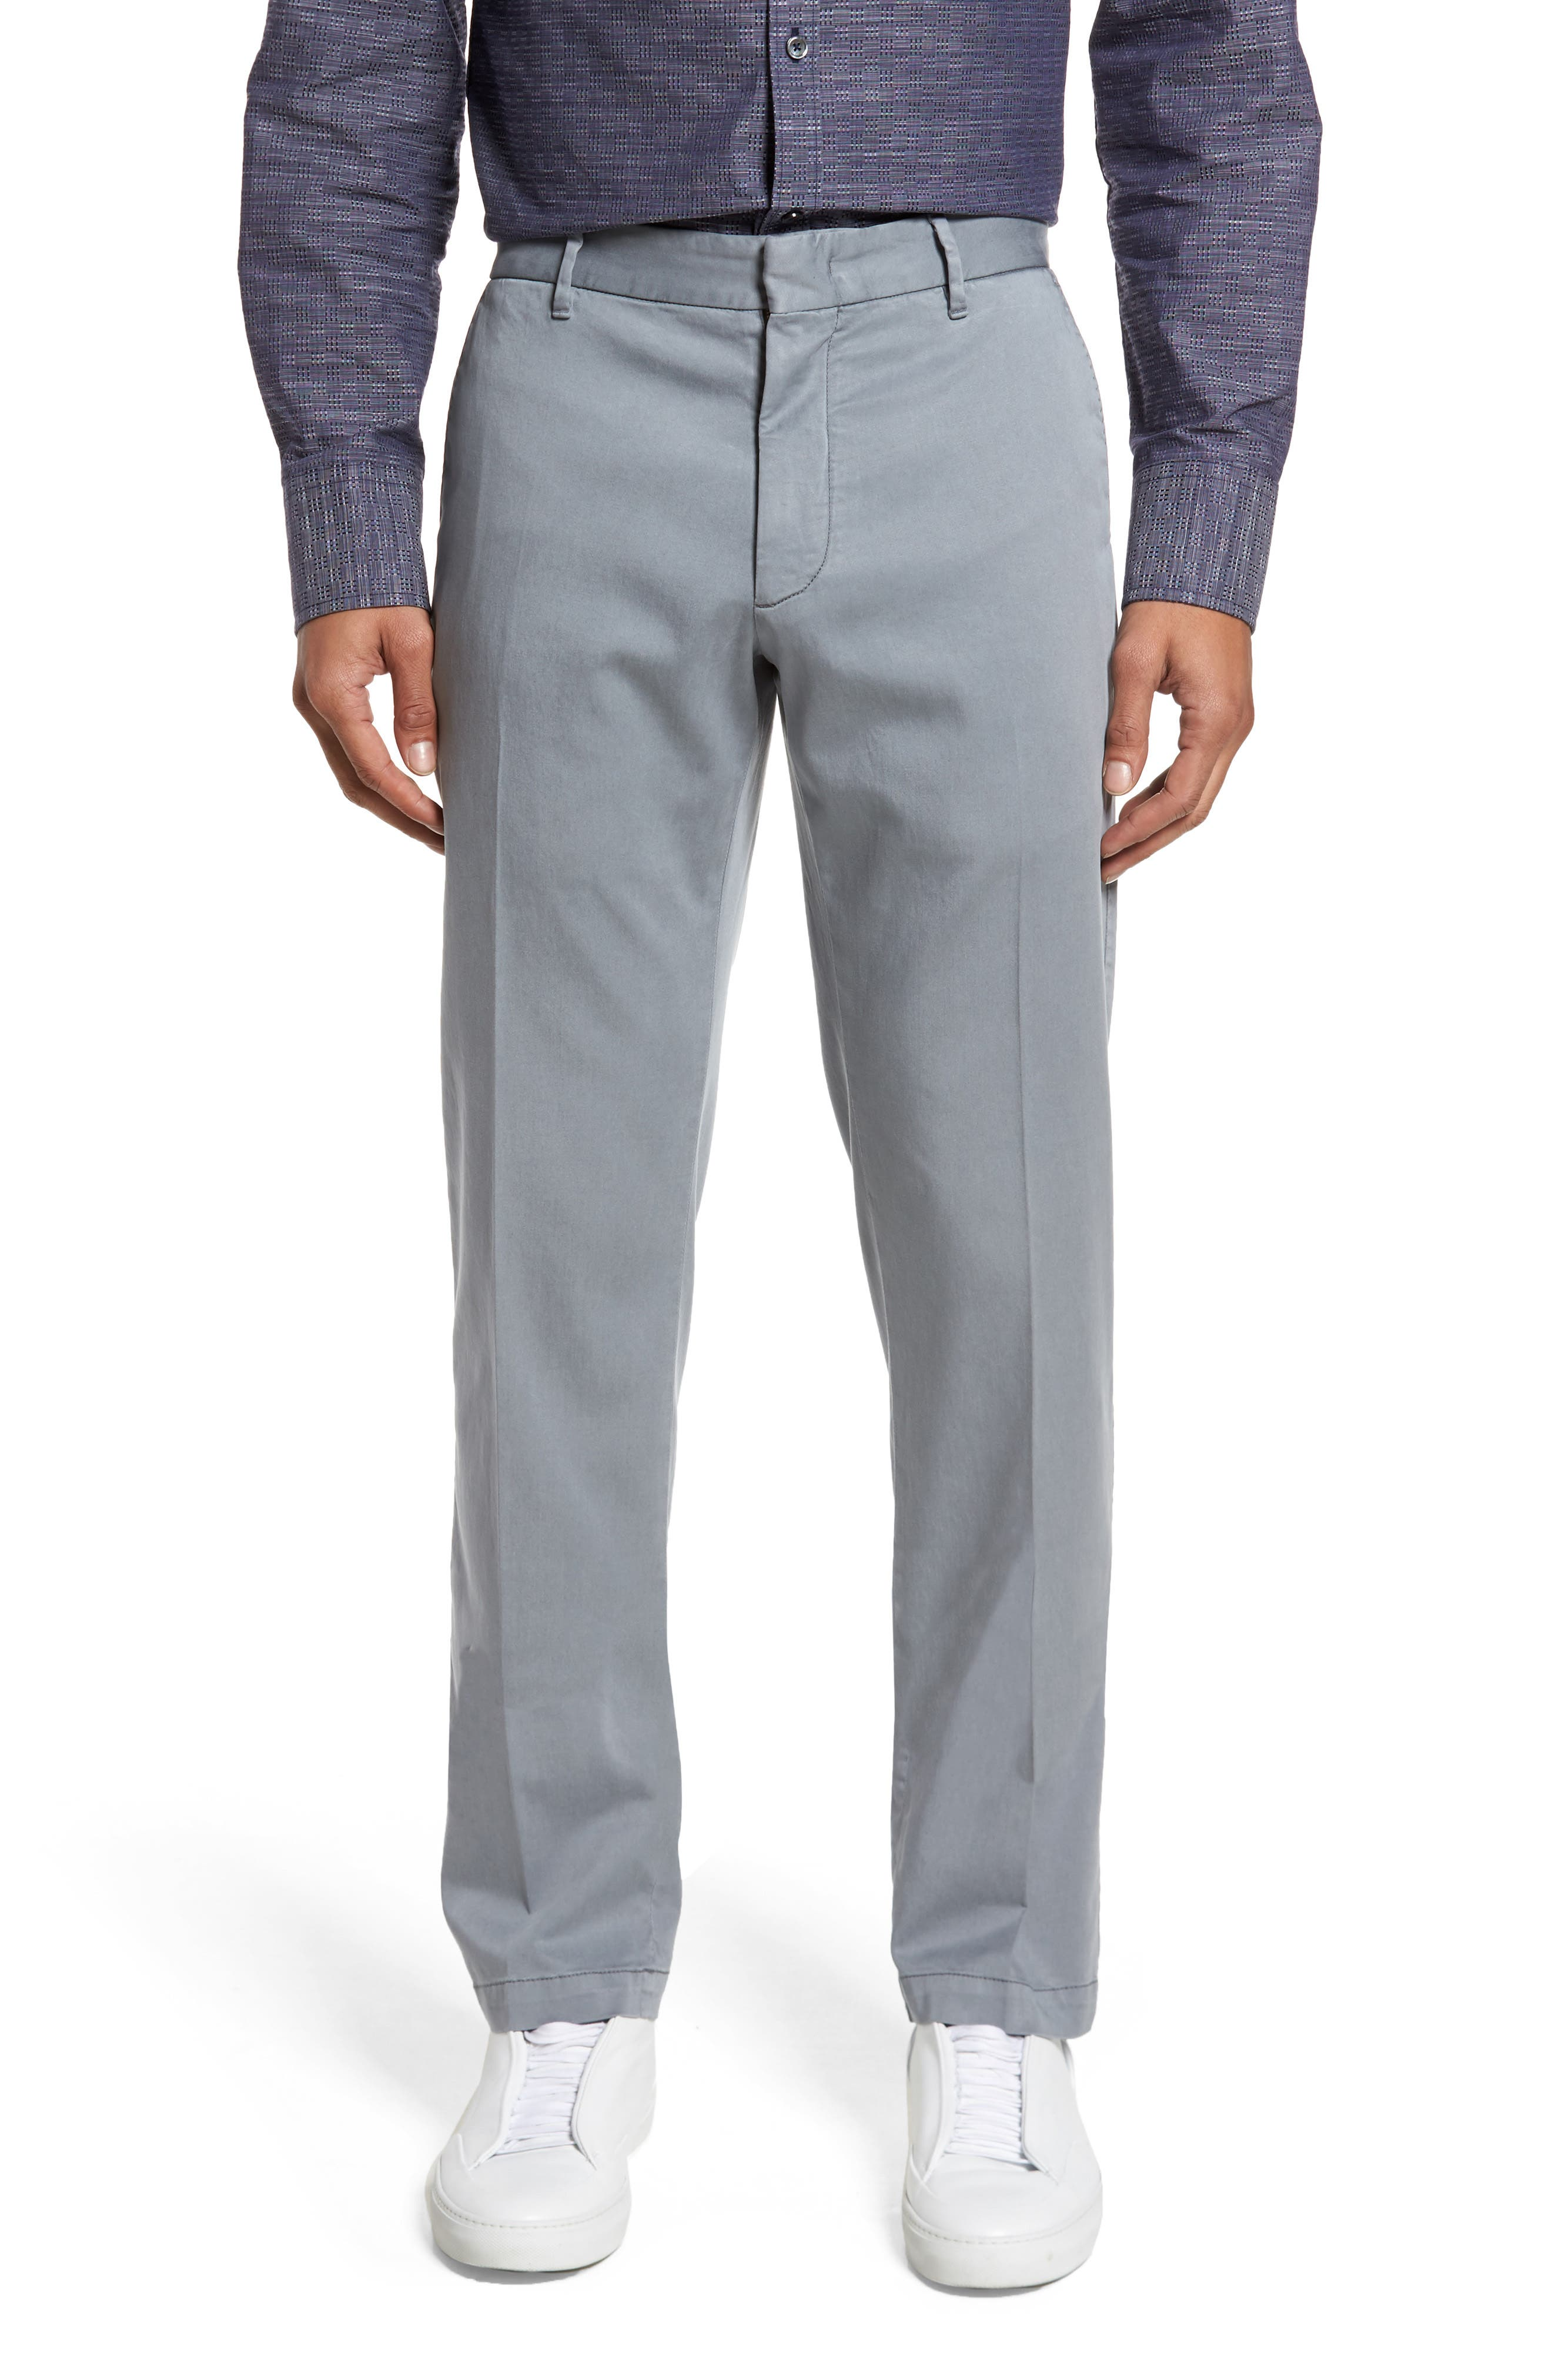 Aster Straight Fit Pants,                         Main,                         color, 020